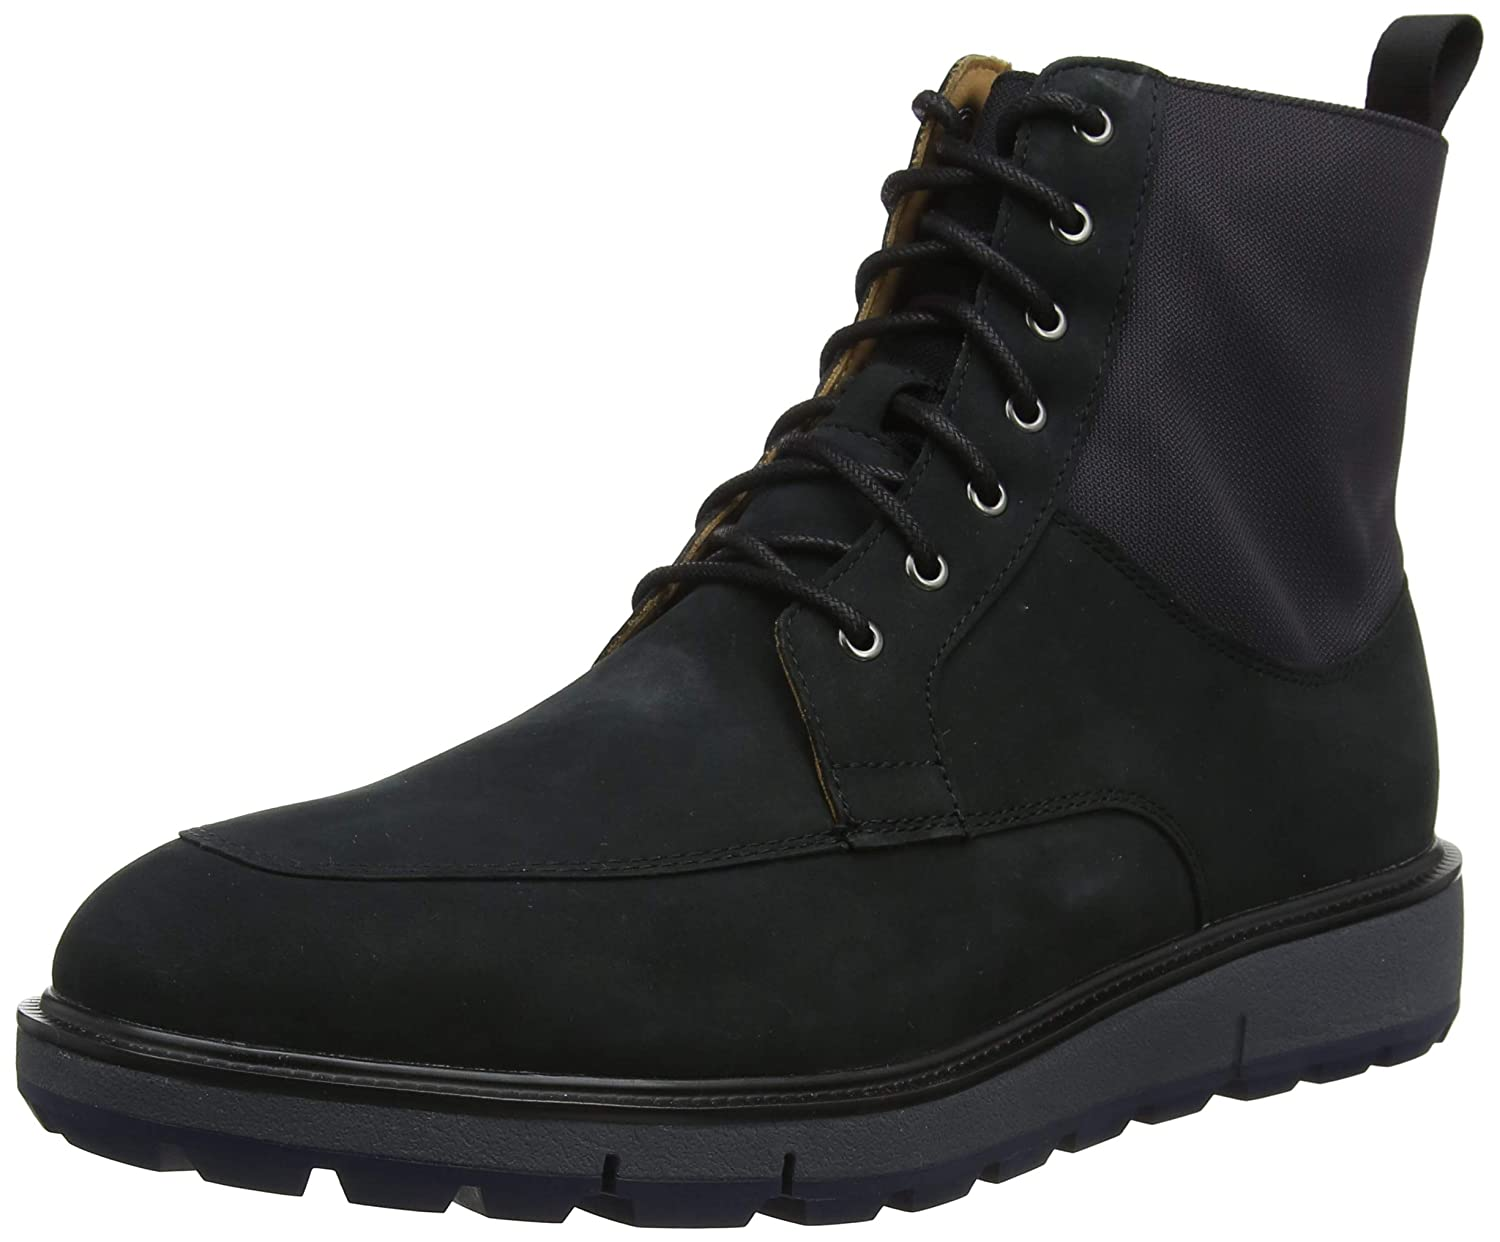 TALLA 40 EU. Swims Motion Country Boot, Botas Militares para Hombre